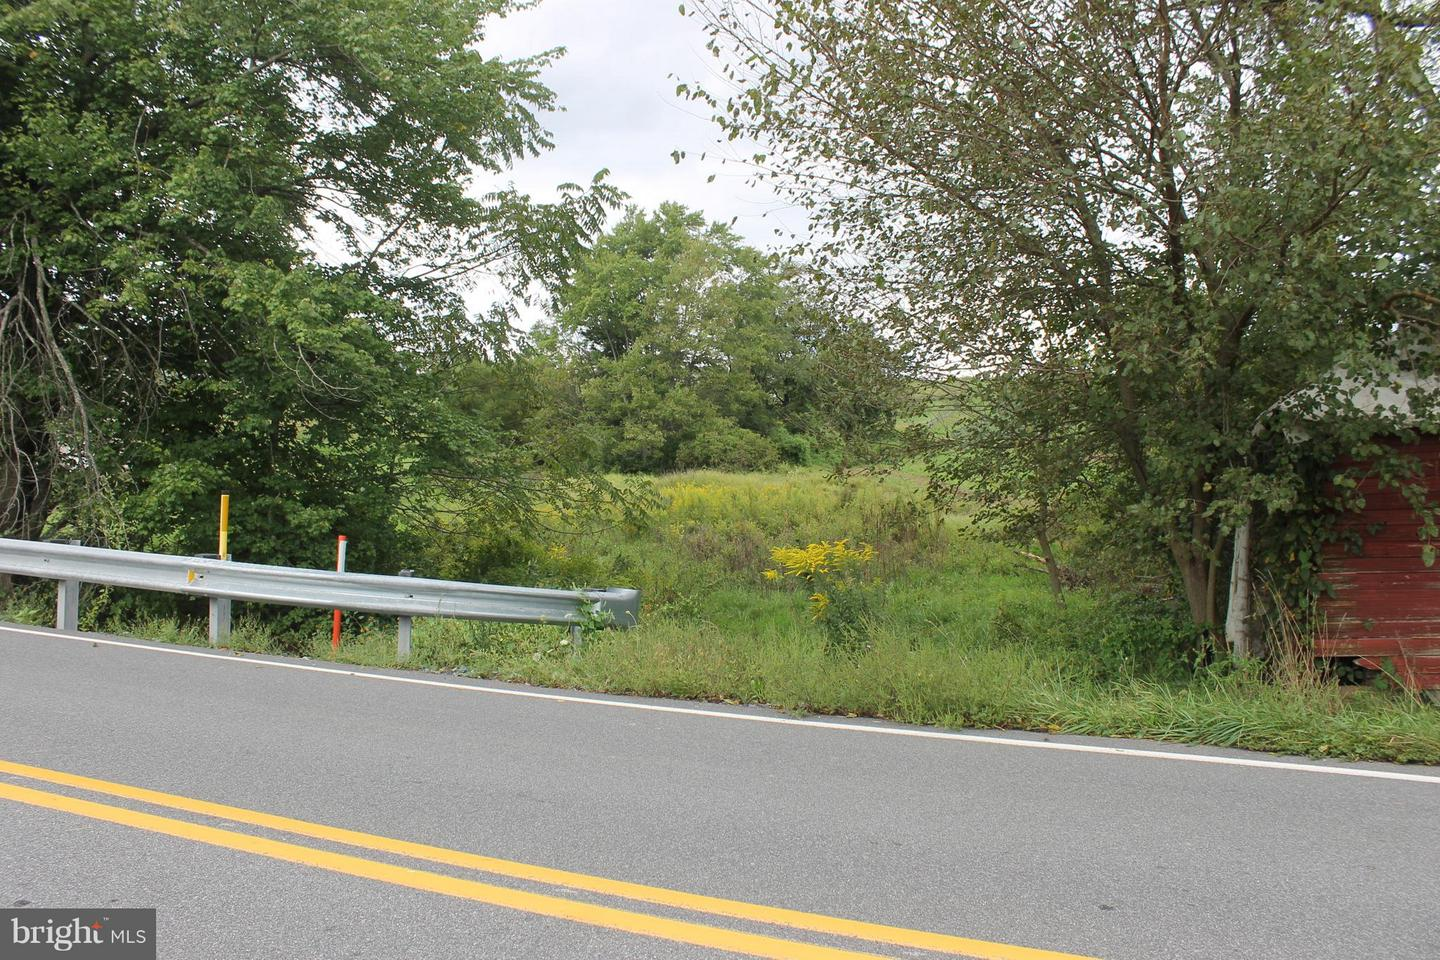 Land for Sale at Glenville, Pennsylvania 17329 United States